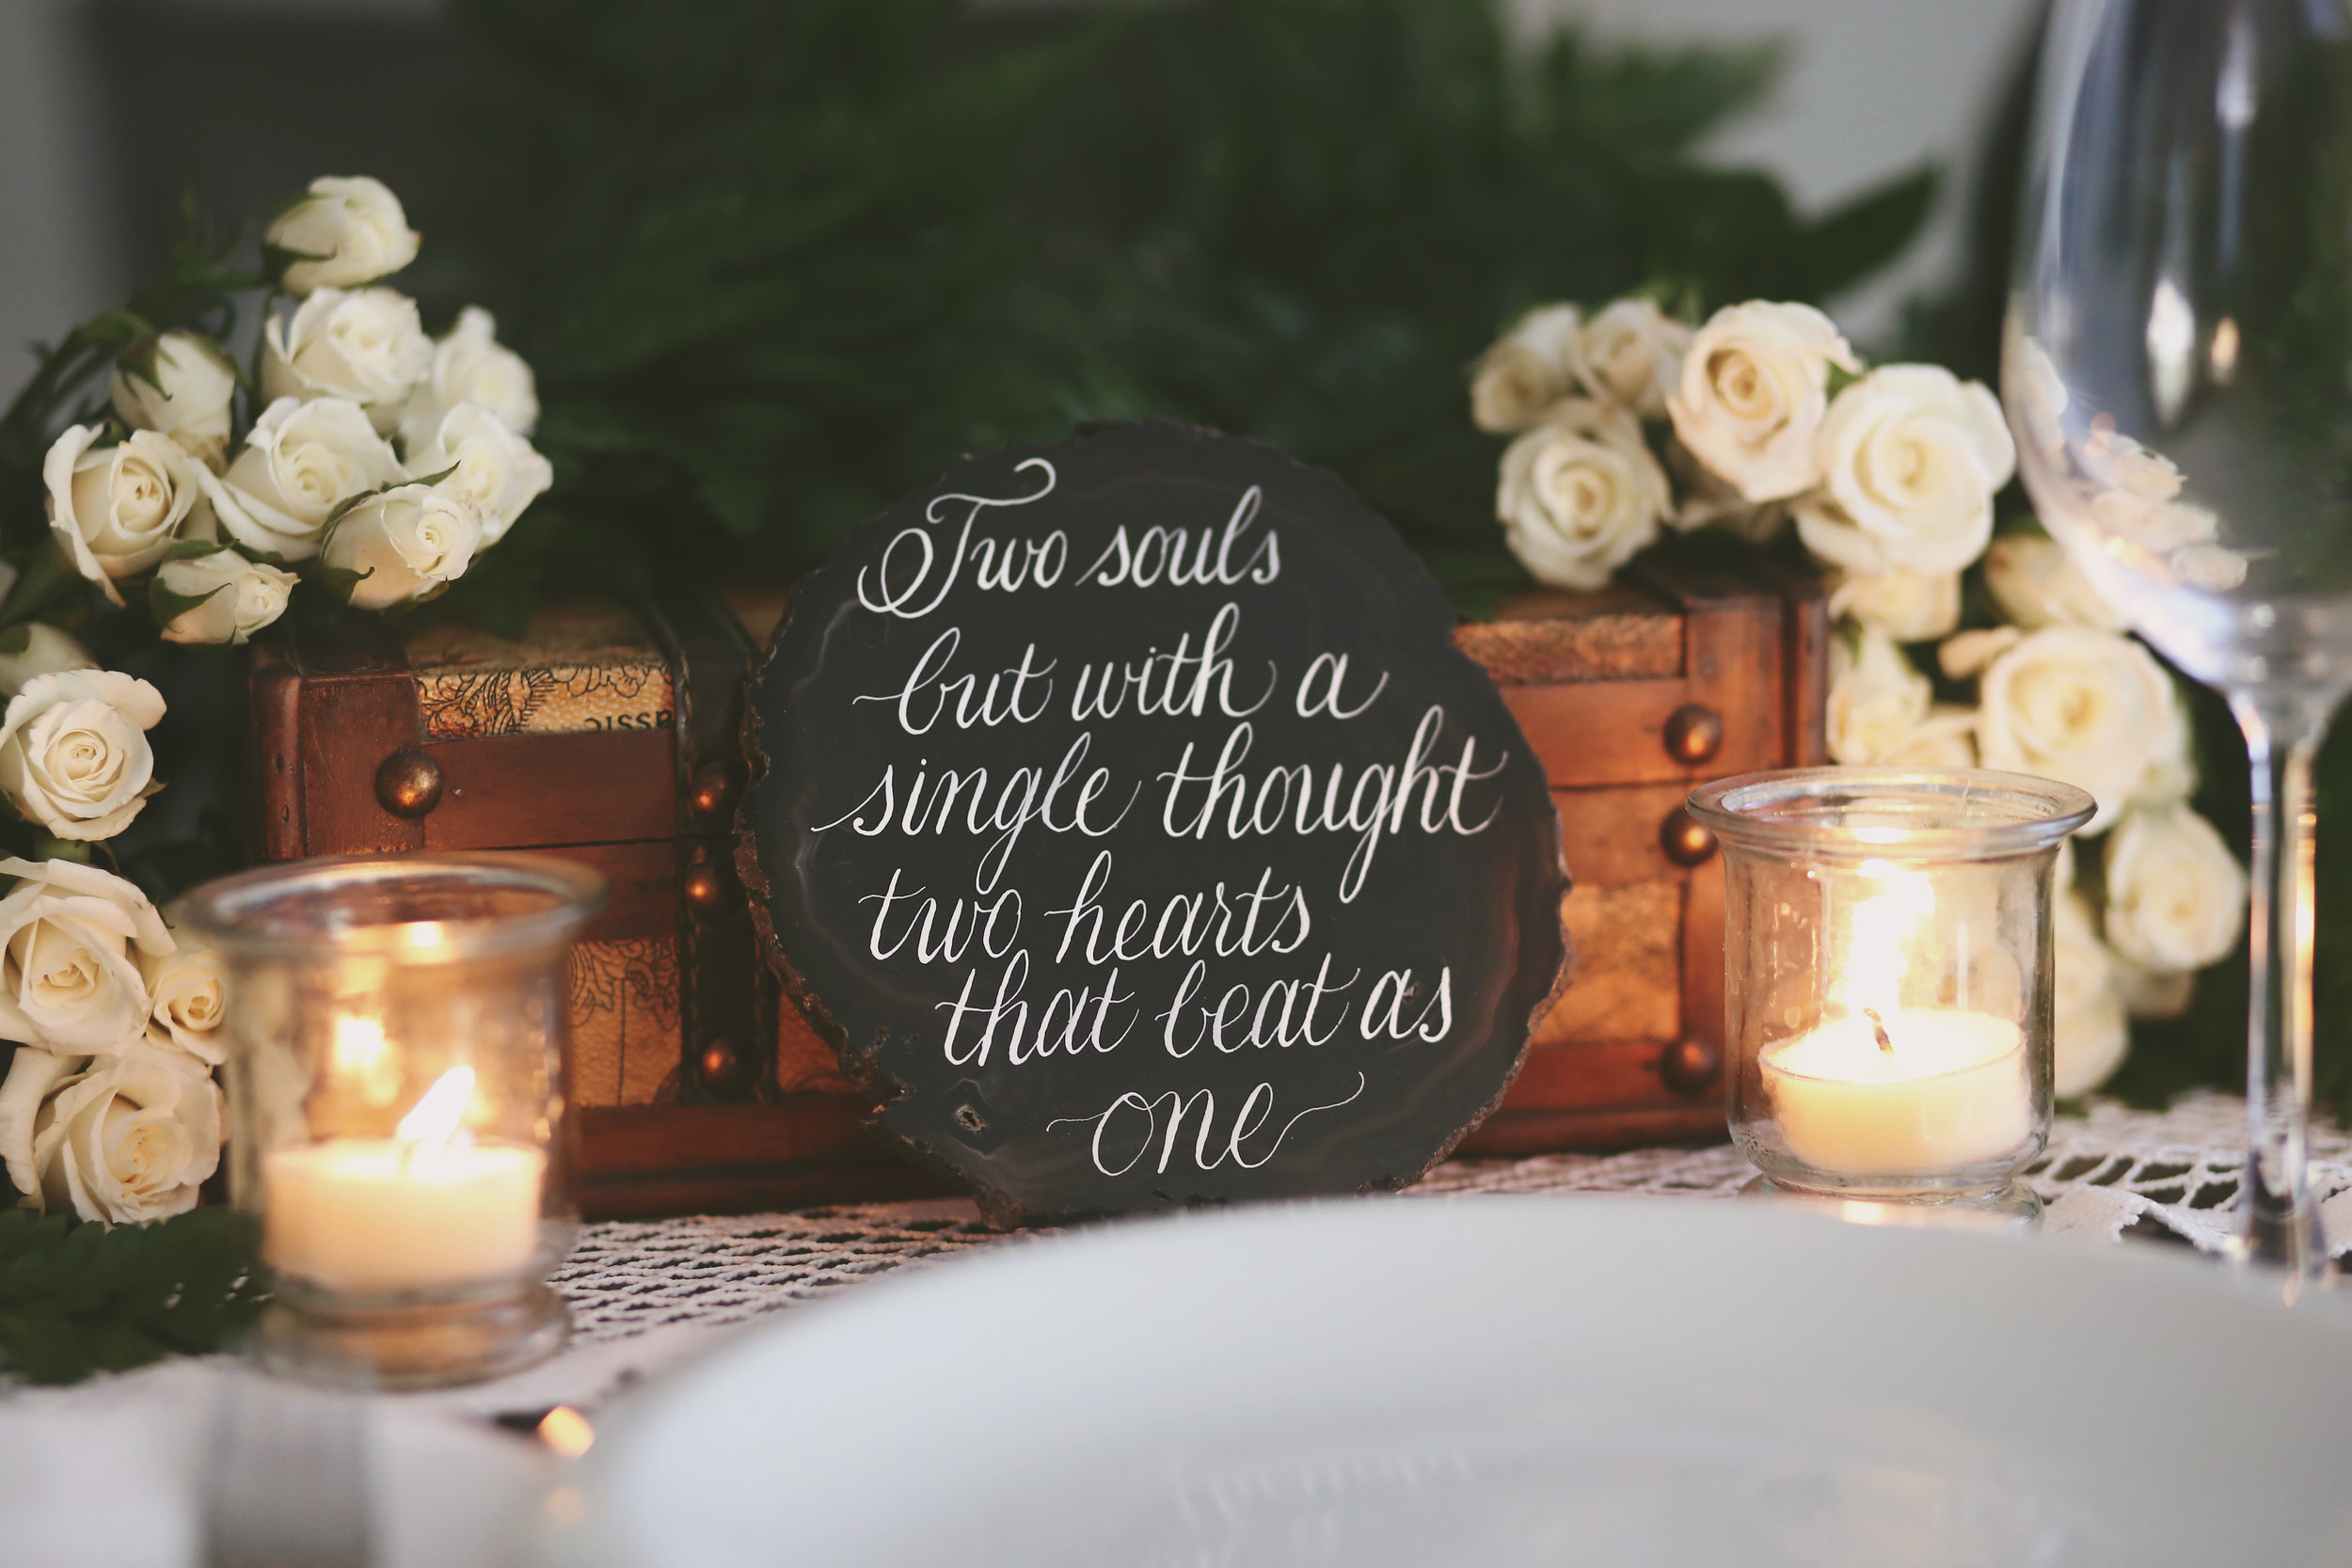 table-wedding-dinner-party-quote-romantic-dining-calligraphy-agates-tablescape_t20_PQApvd.jpg